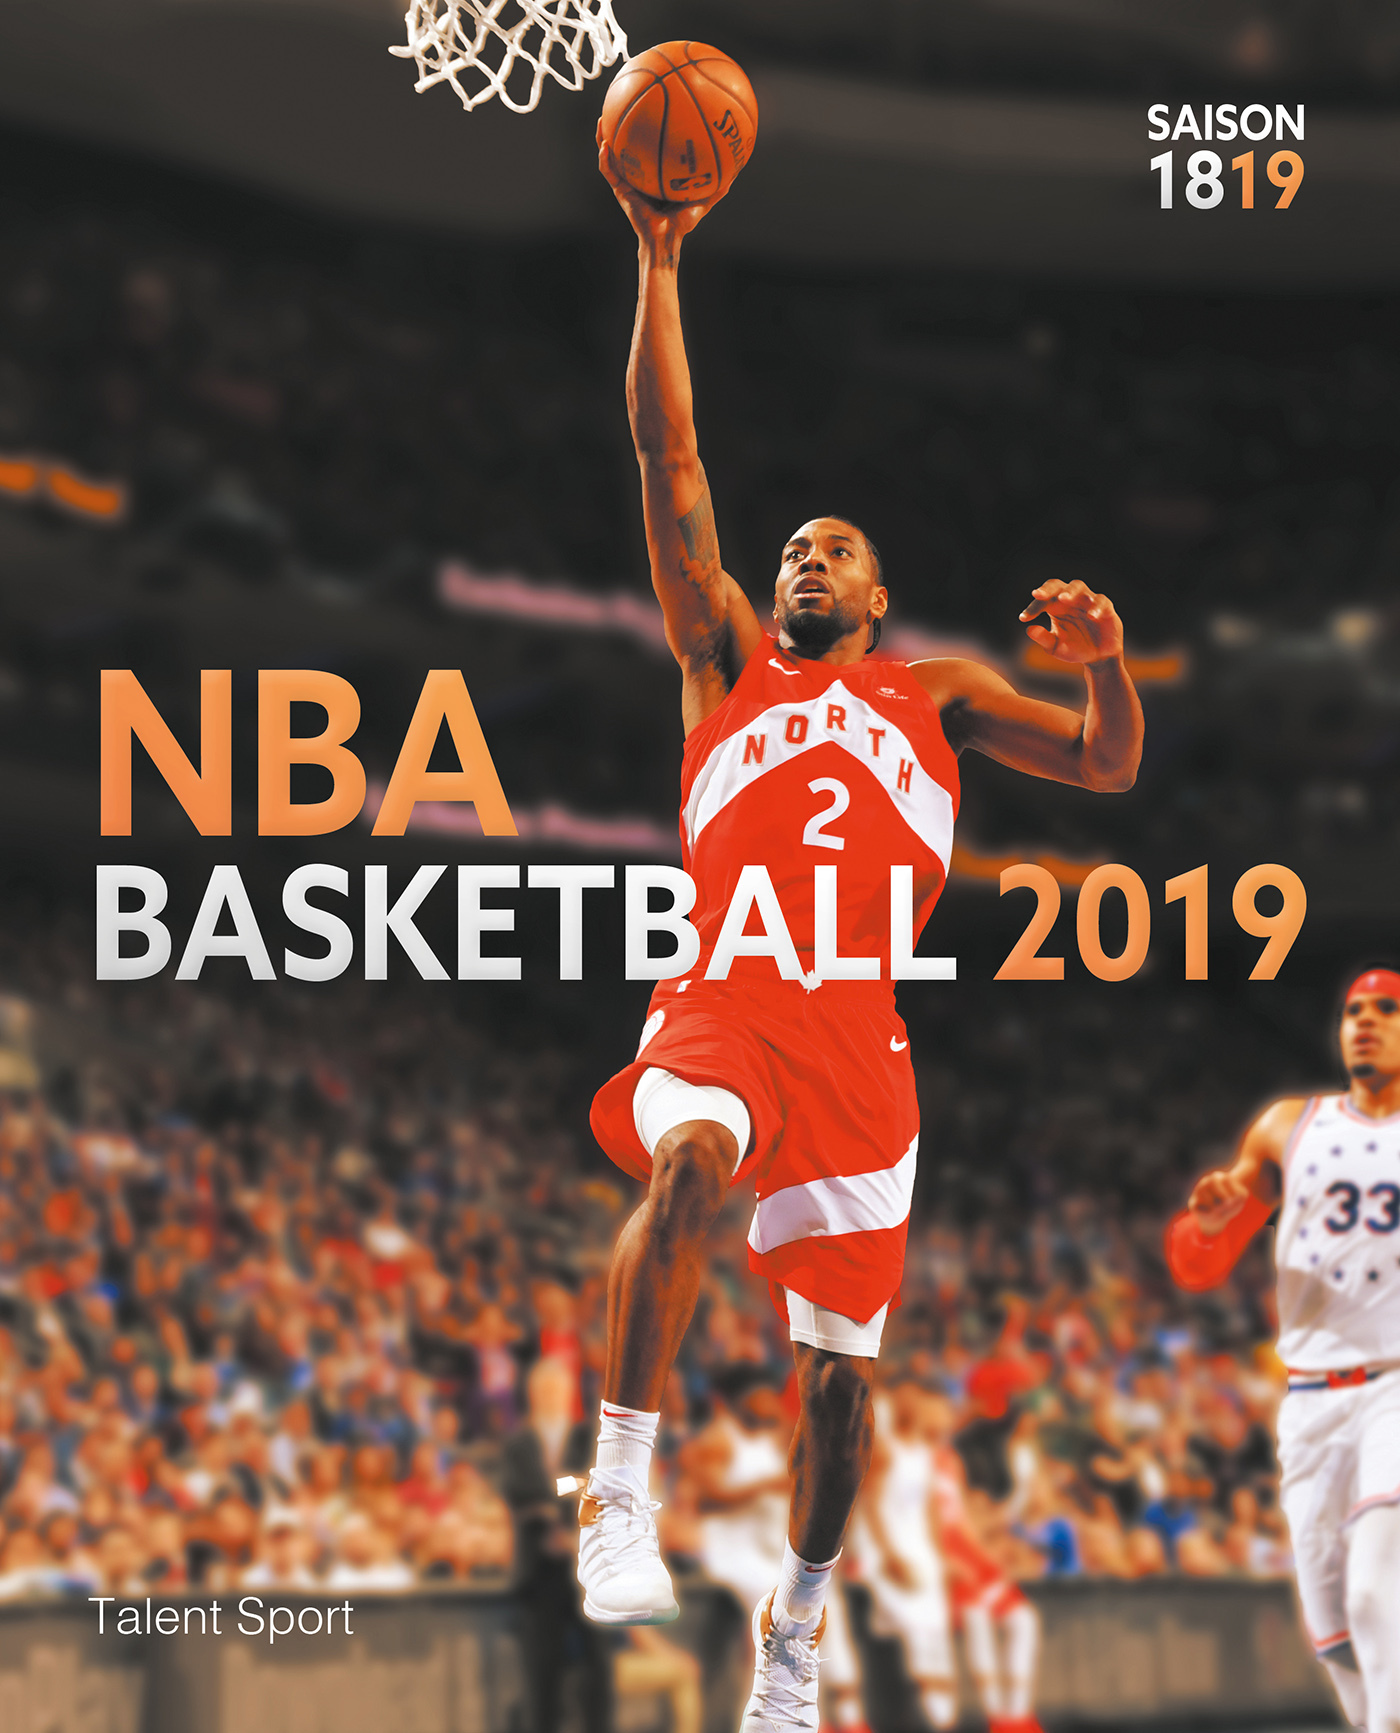 NBA BASKETBALL 2019